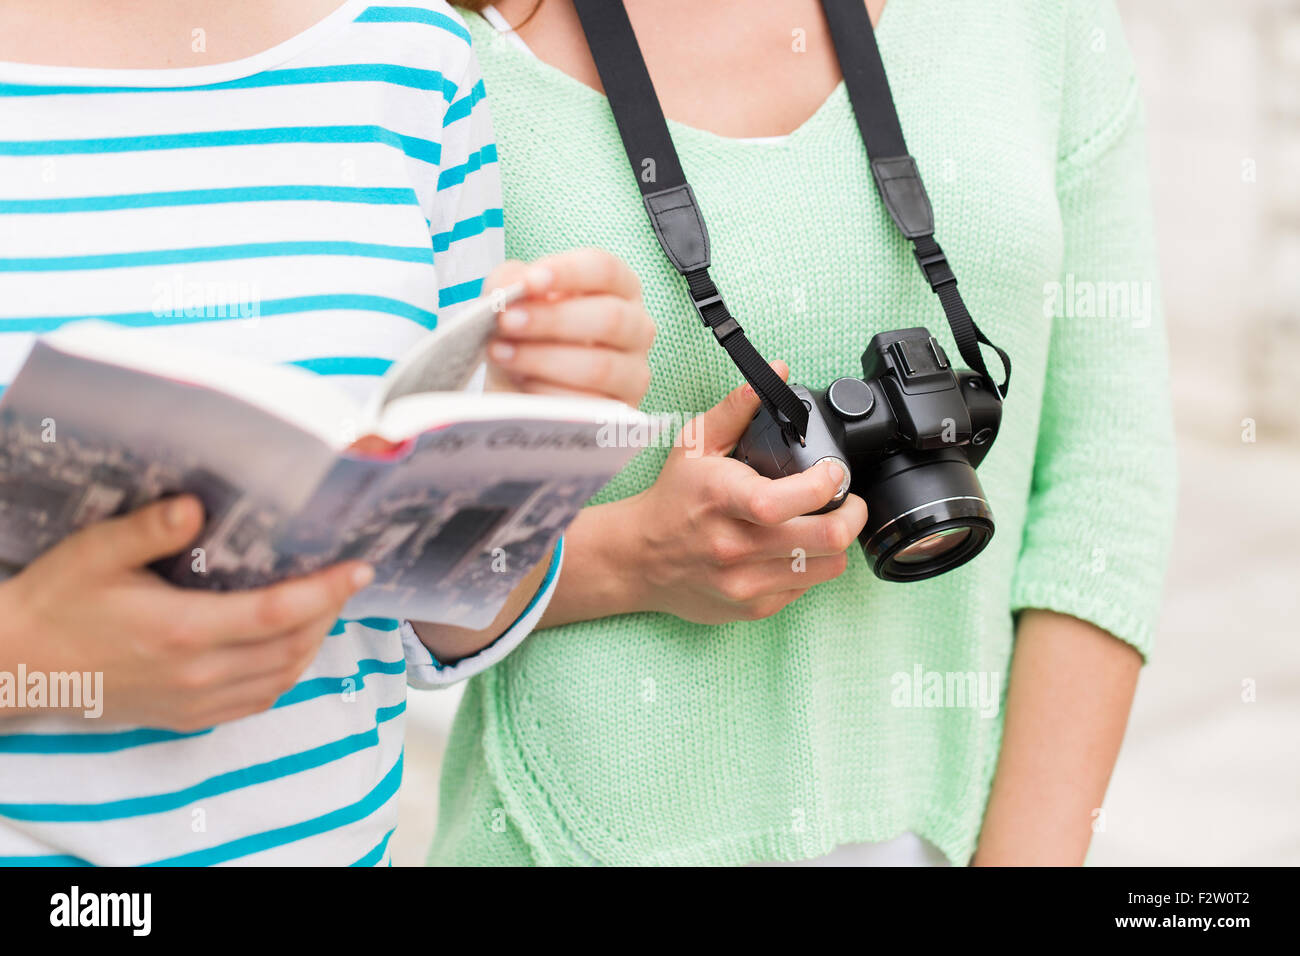 close up of women with city guide and camera - Stock Image